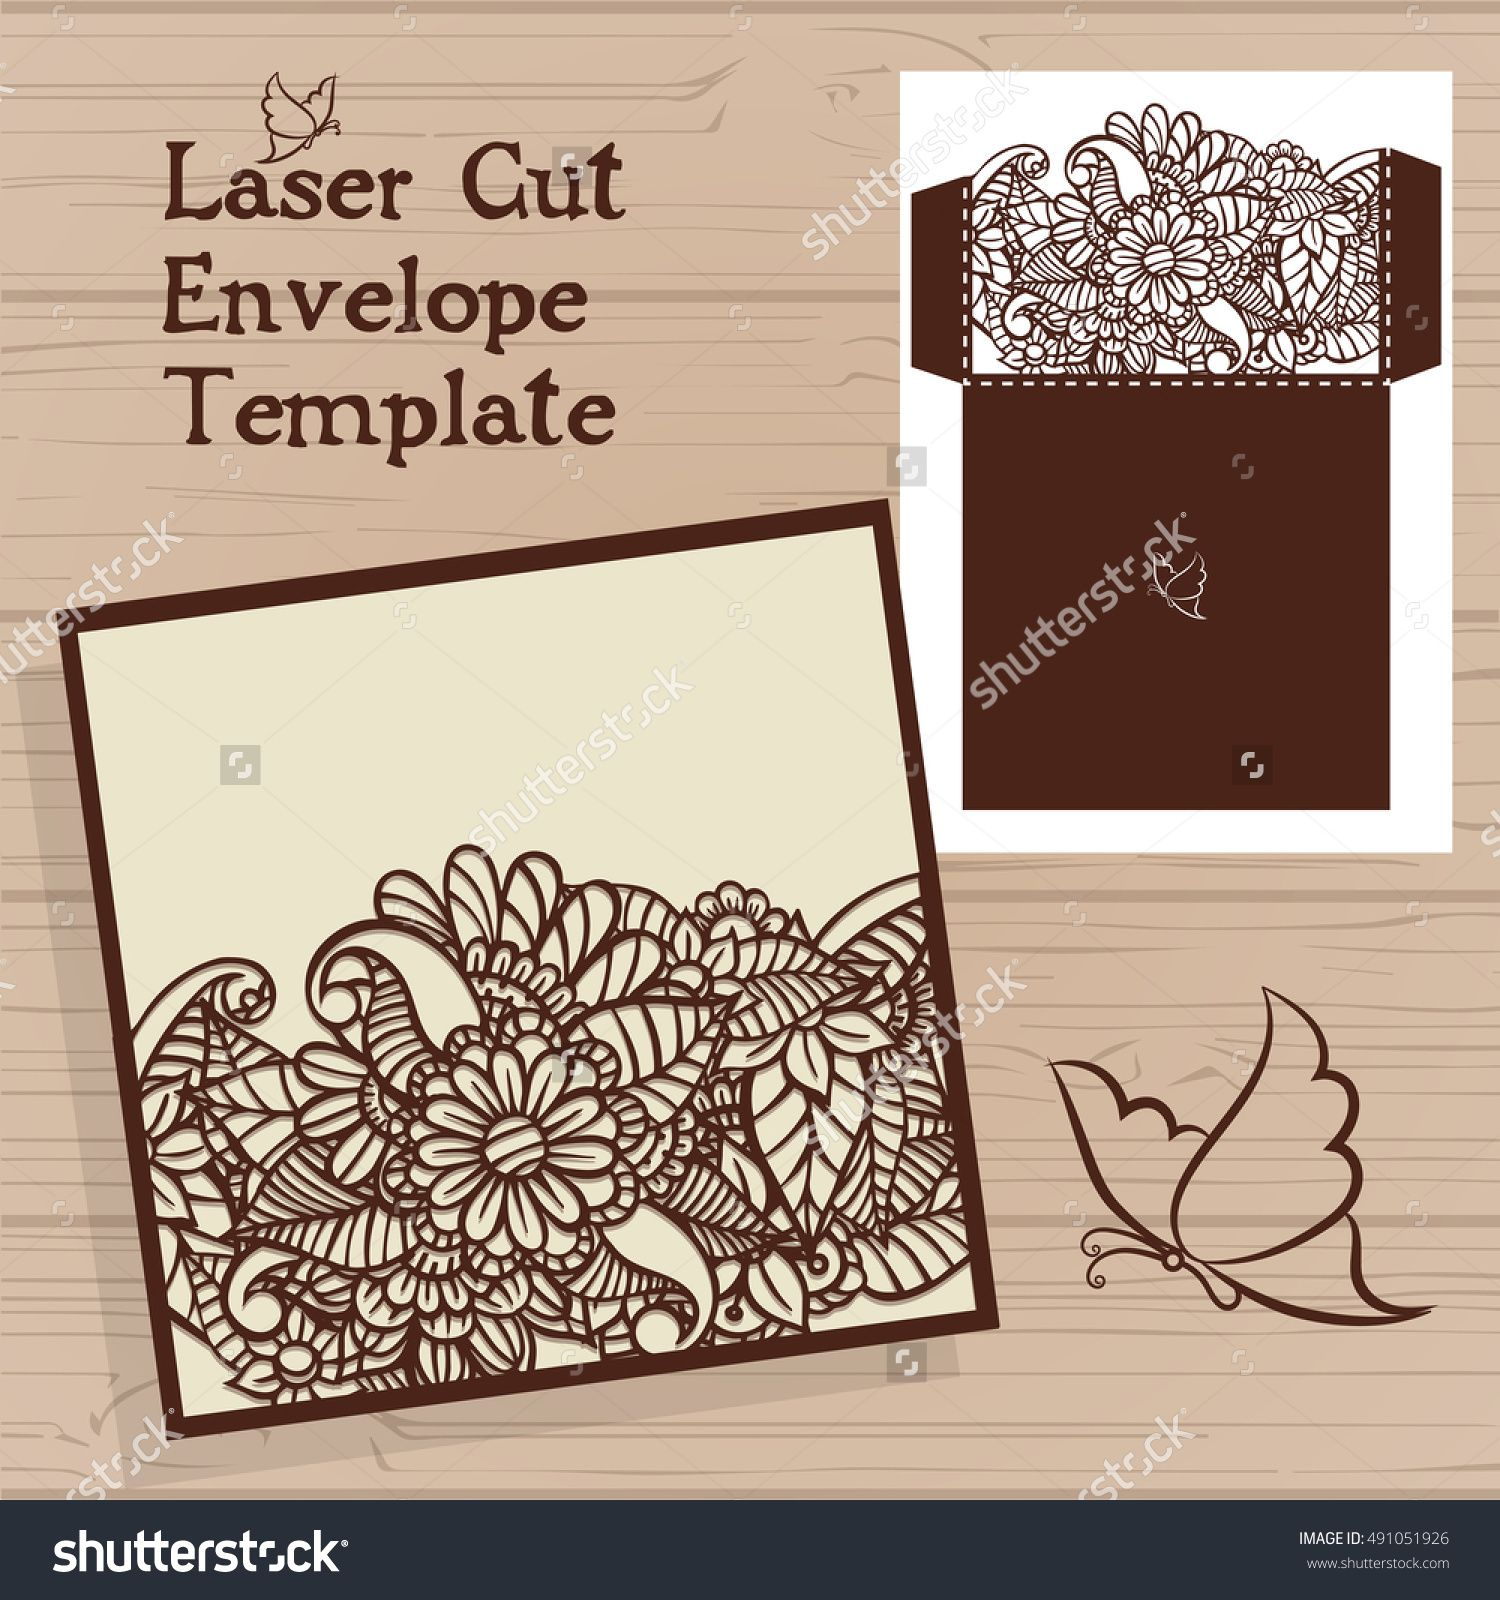 Lasercut vector wedding invitation template wedding invitation lasercut vector wedding invitation template wedding invitation envelope with flowers for laser cutting lace stopboris Choice Image